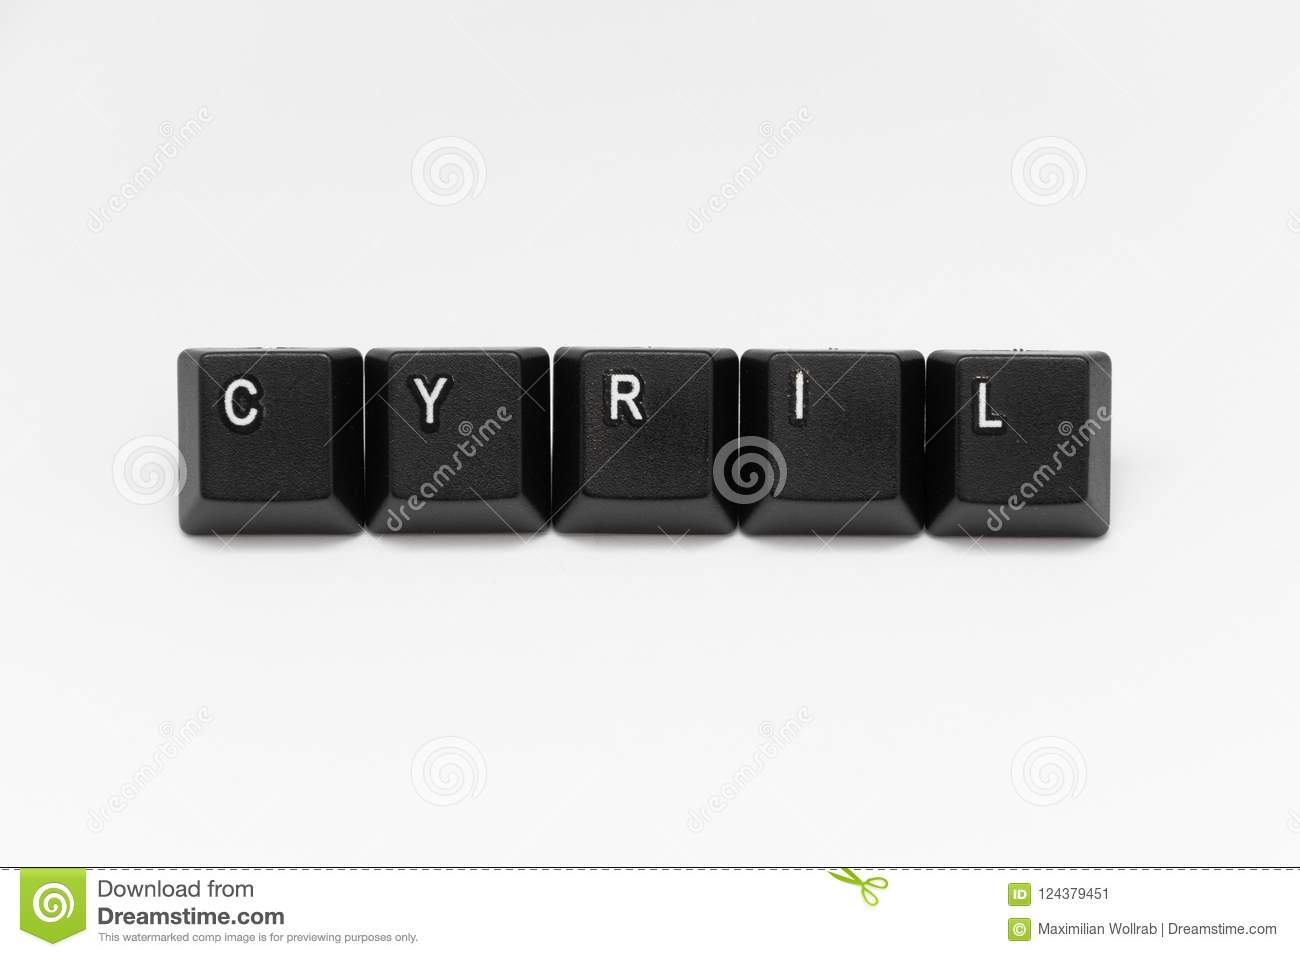 Black Keys Of Keyboard With Different Years Words Names Stock